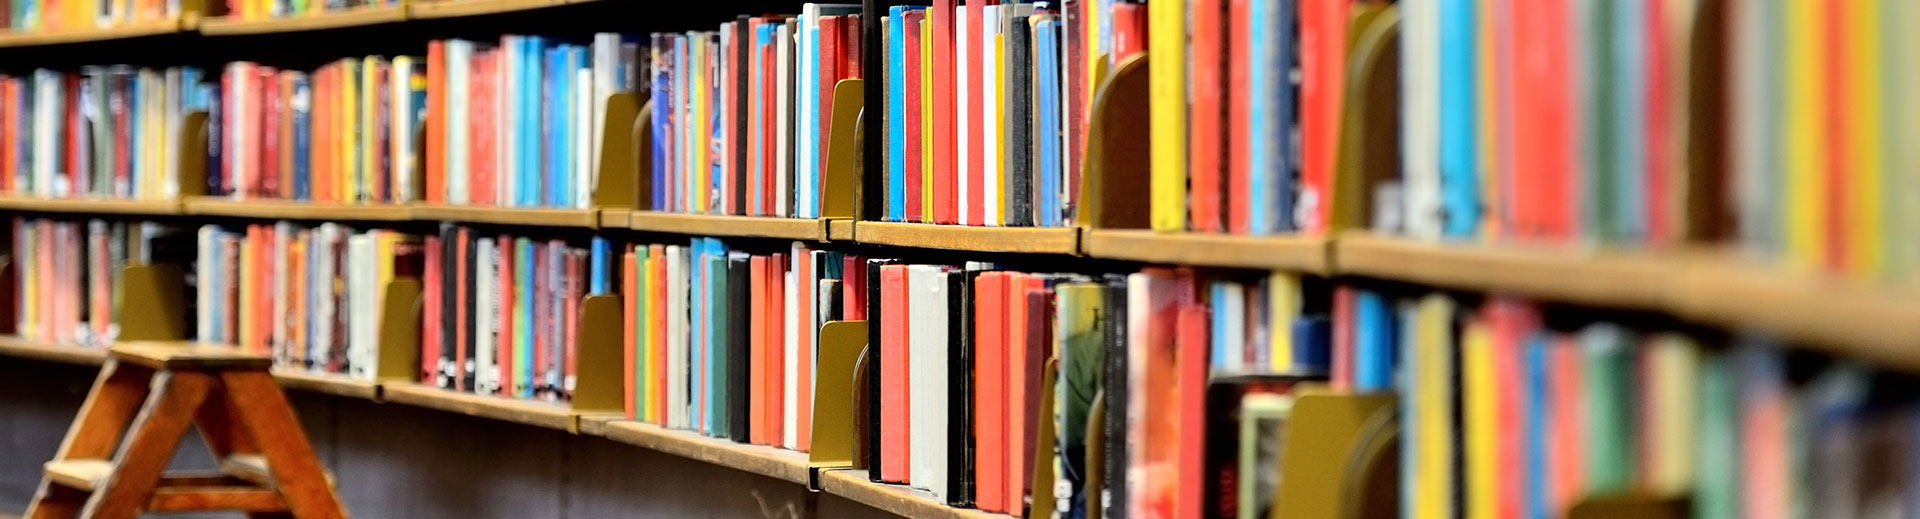 Photo of books on a library shelf